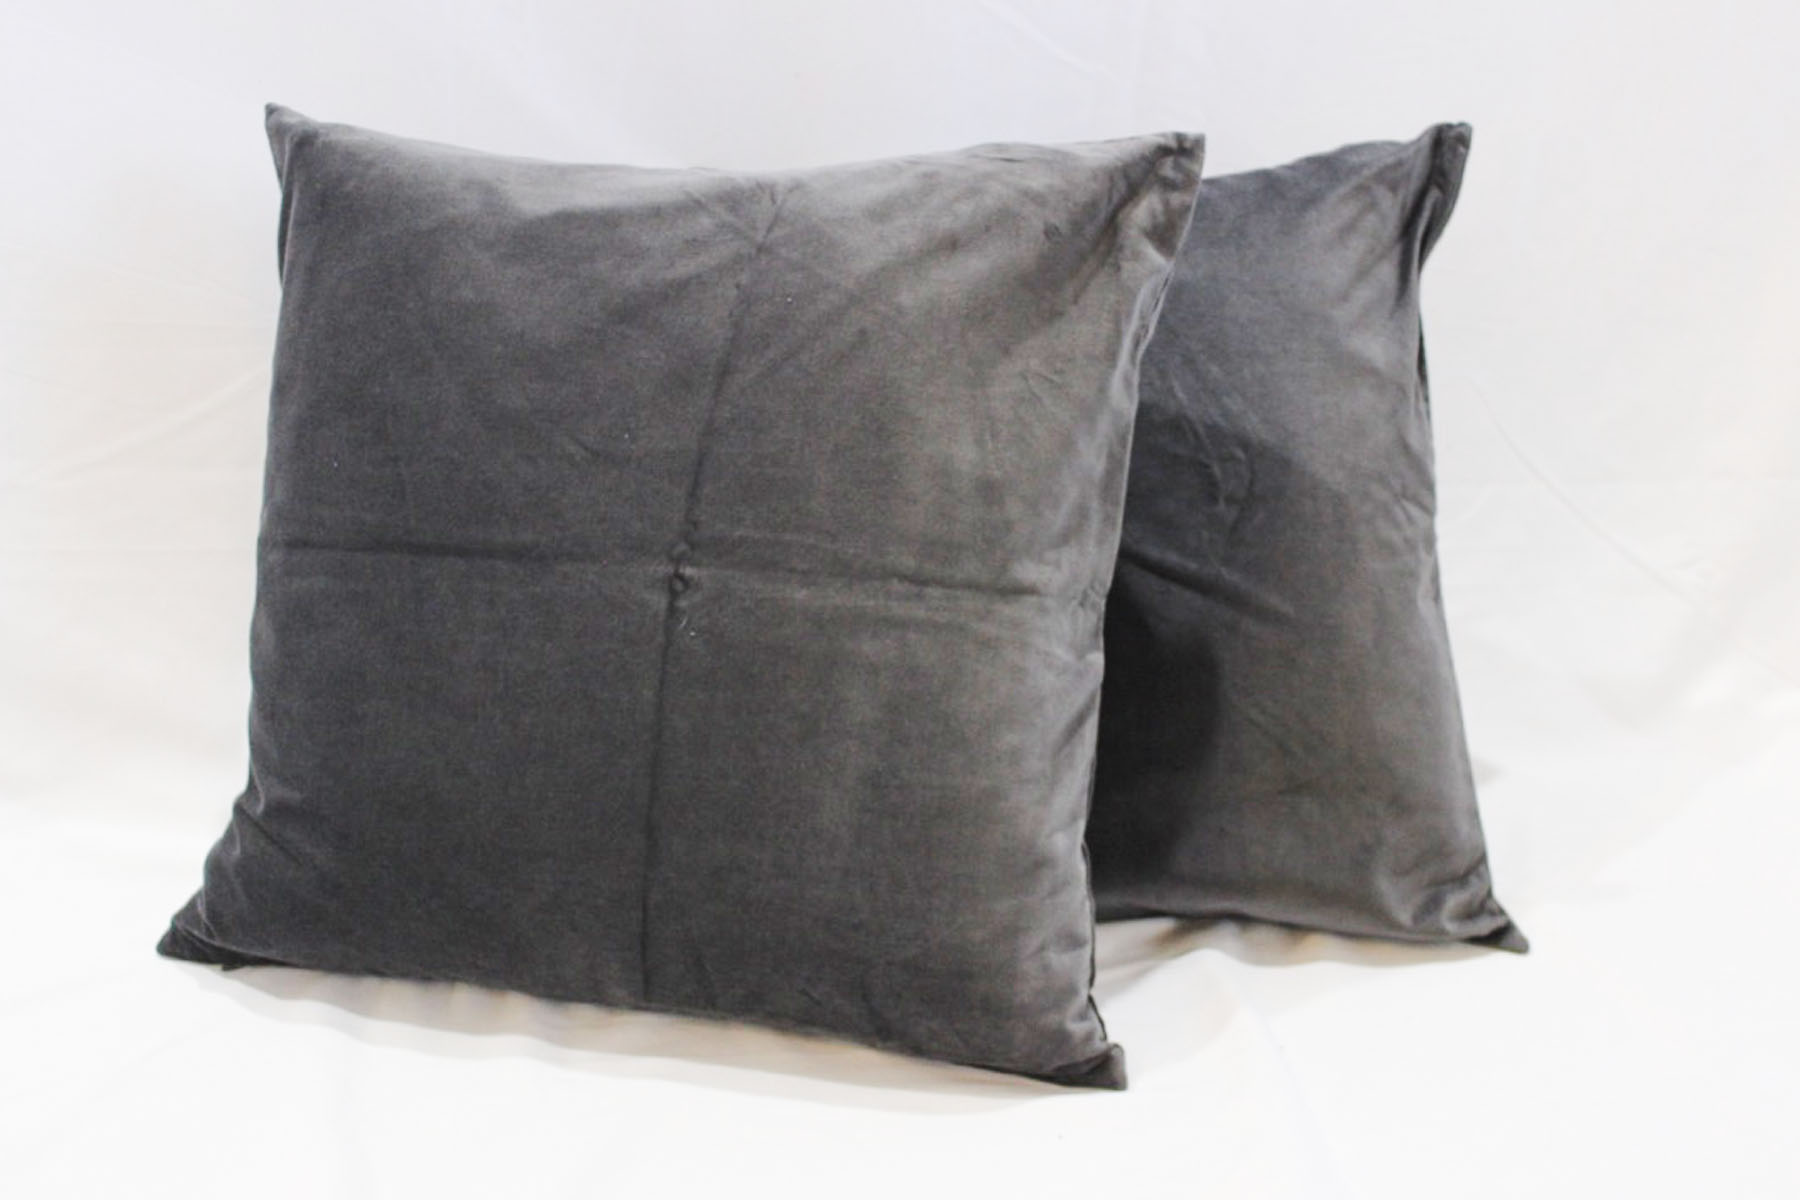 Gray Velvet Pillows - Scavenged Vintage